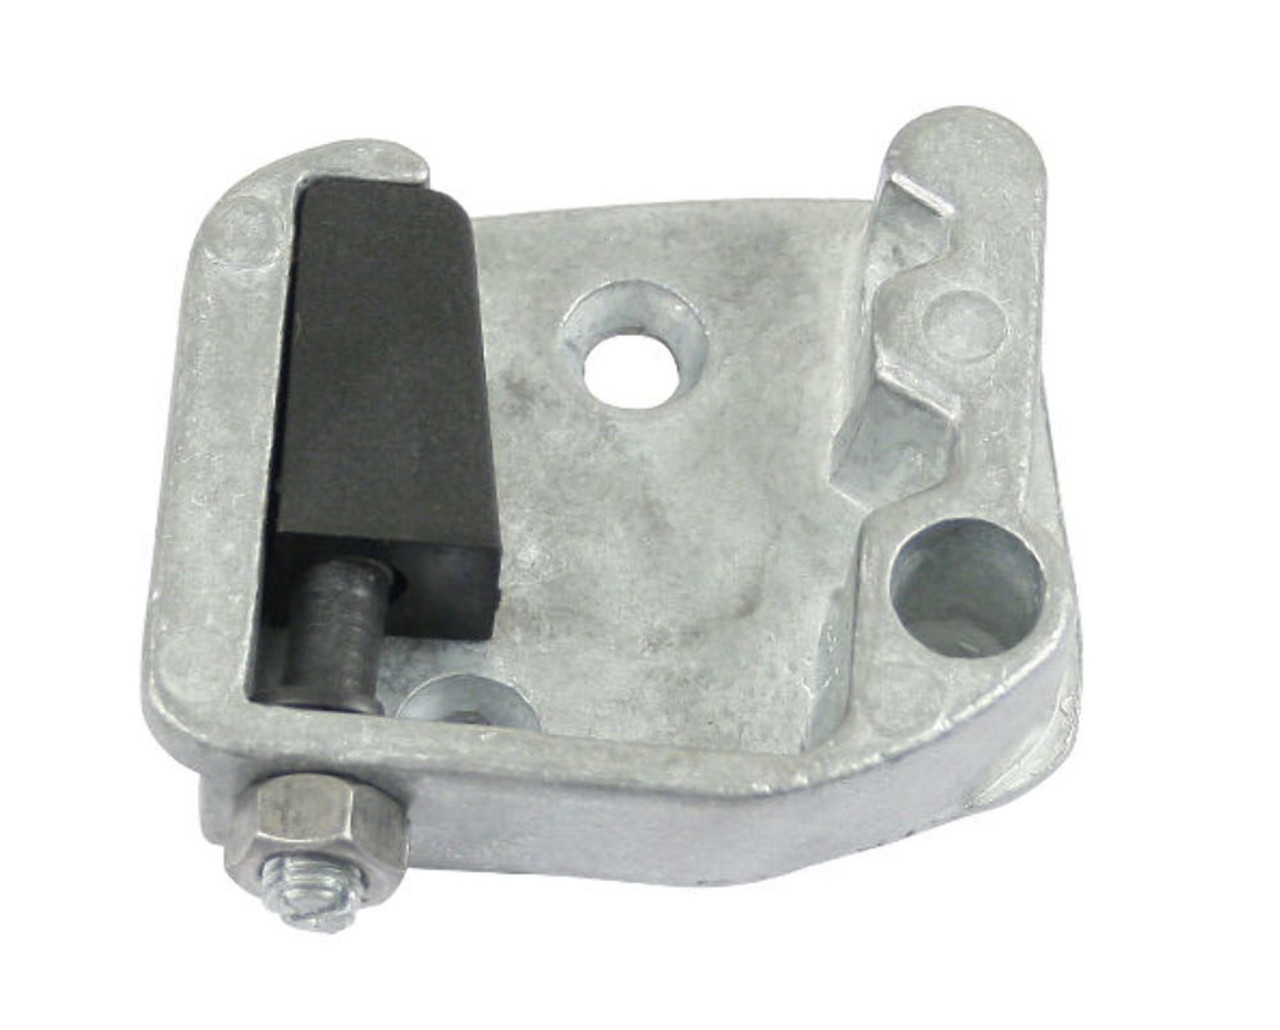 Door Striker Plate, Right, Fits Air Cooled VW Bug Type 1, 60-64, EMPI 98-8323